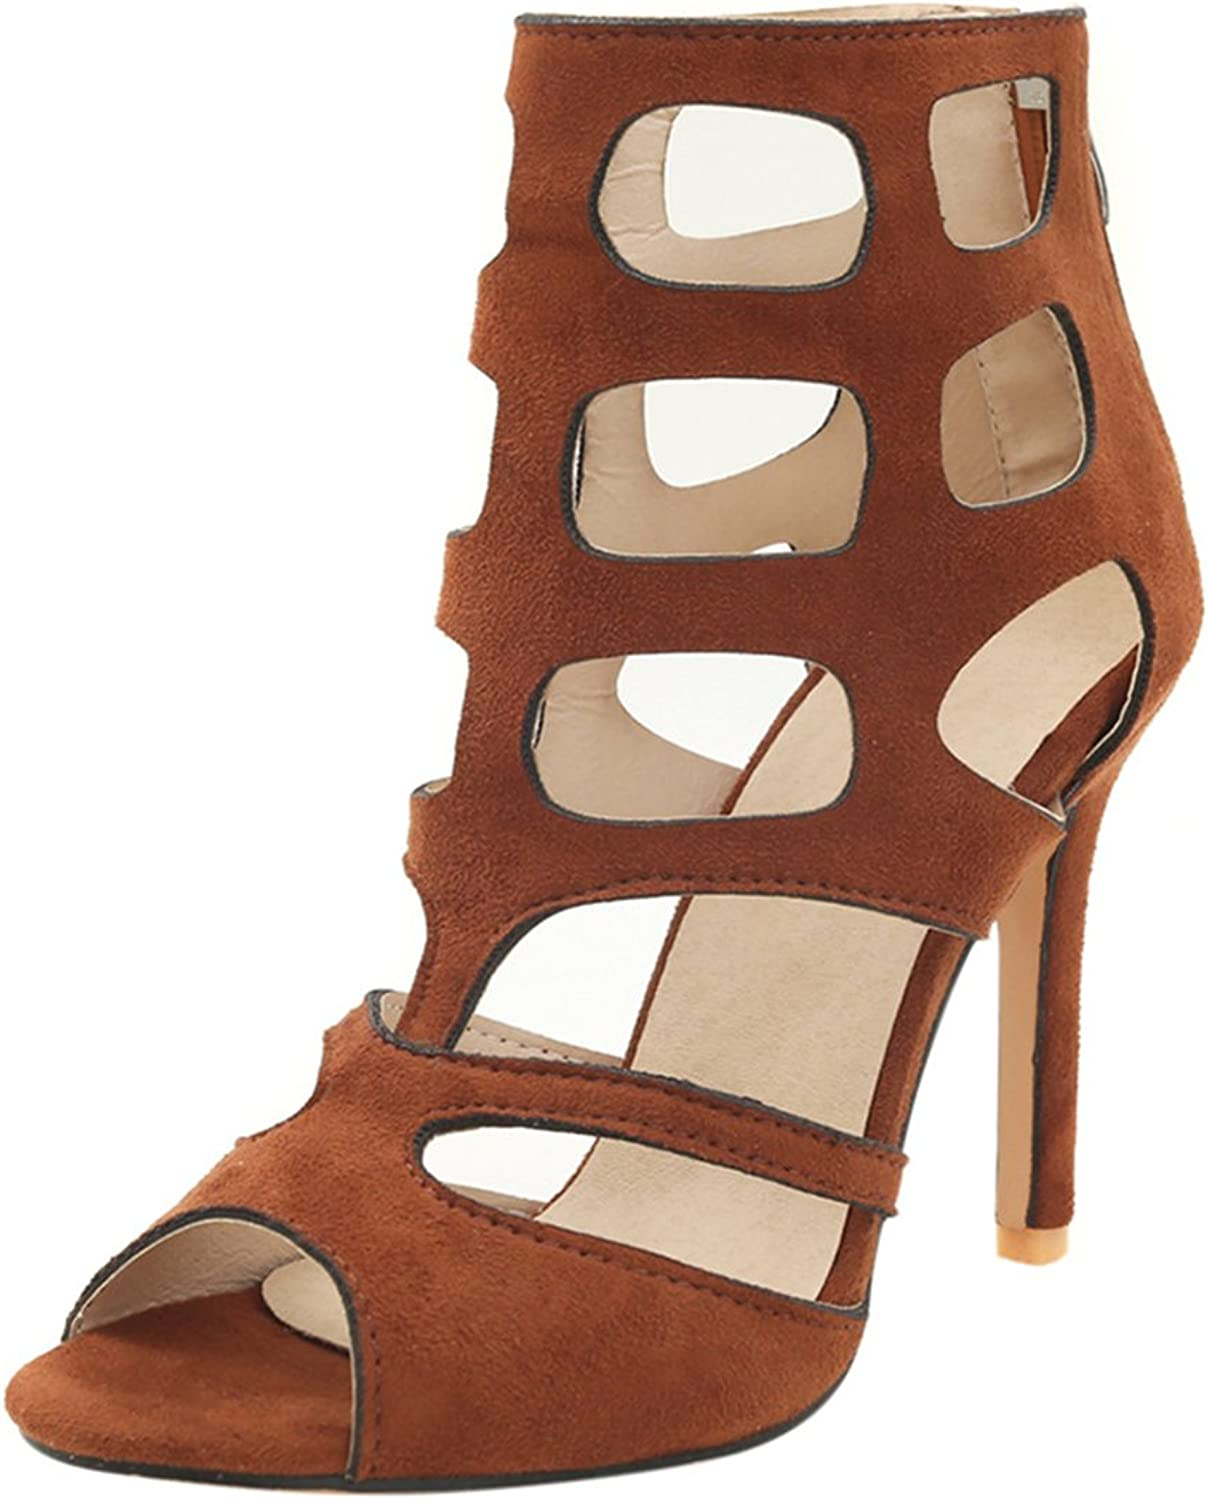 Artfaerie Women's Stiletto High Heels Gladiator Summer Boots Cut Out Peep Toe Sandals Party Ladies shoes